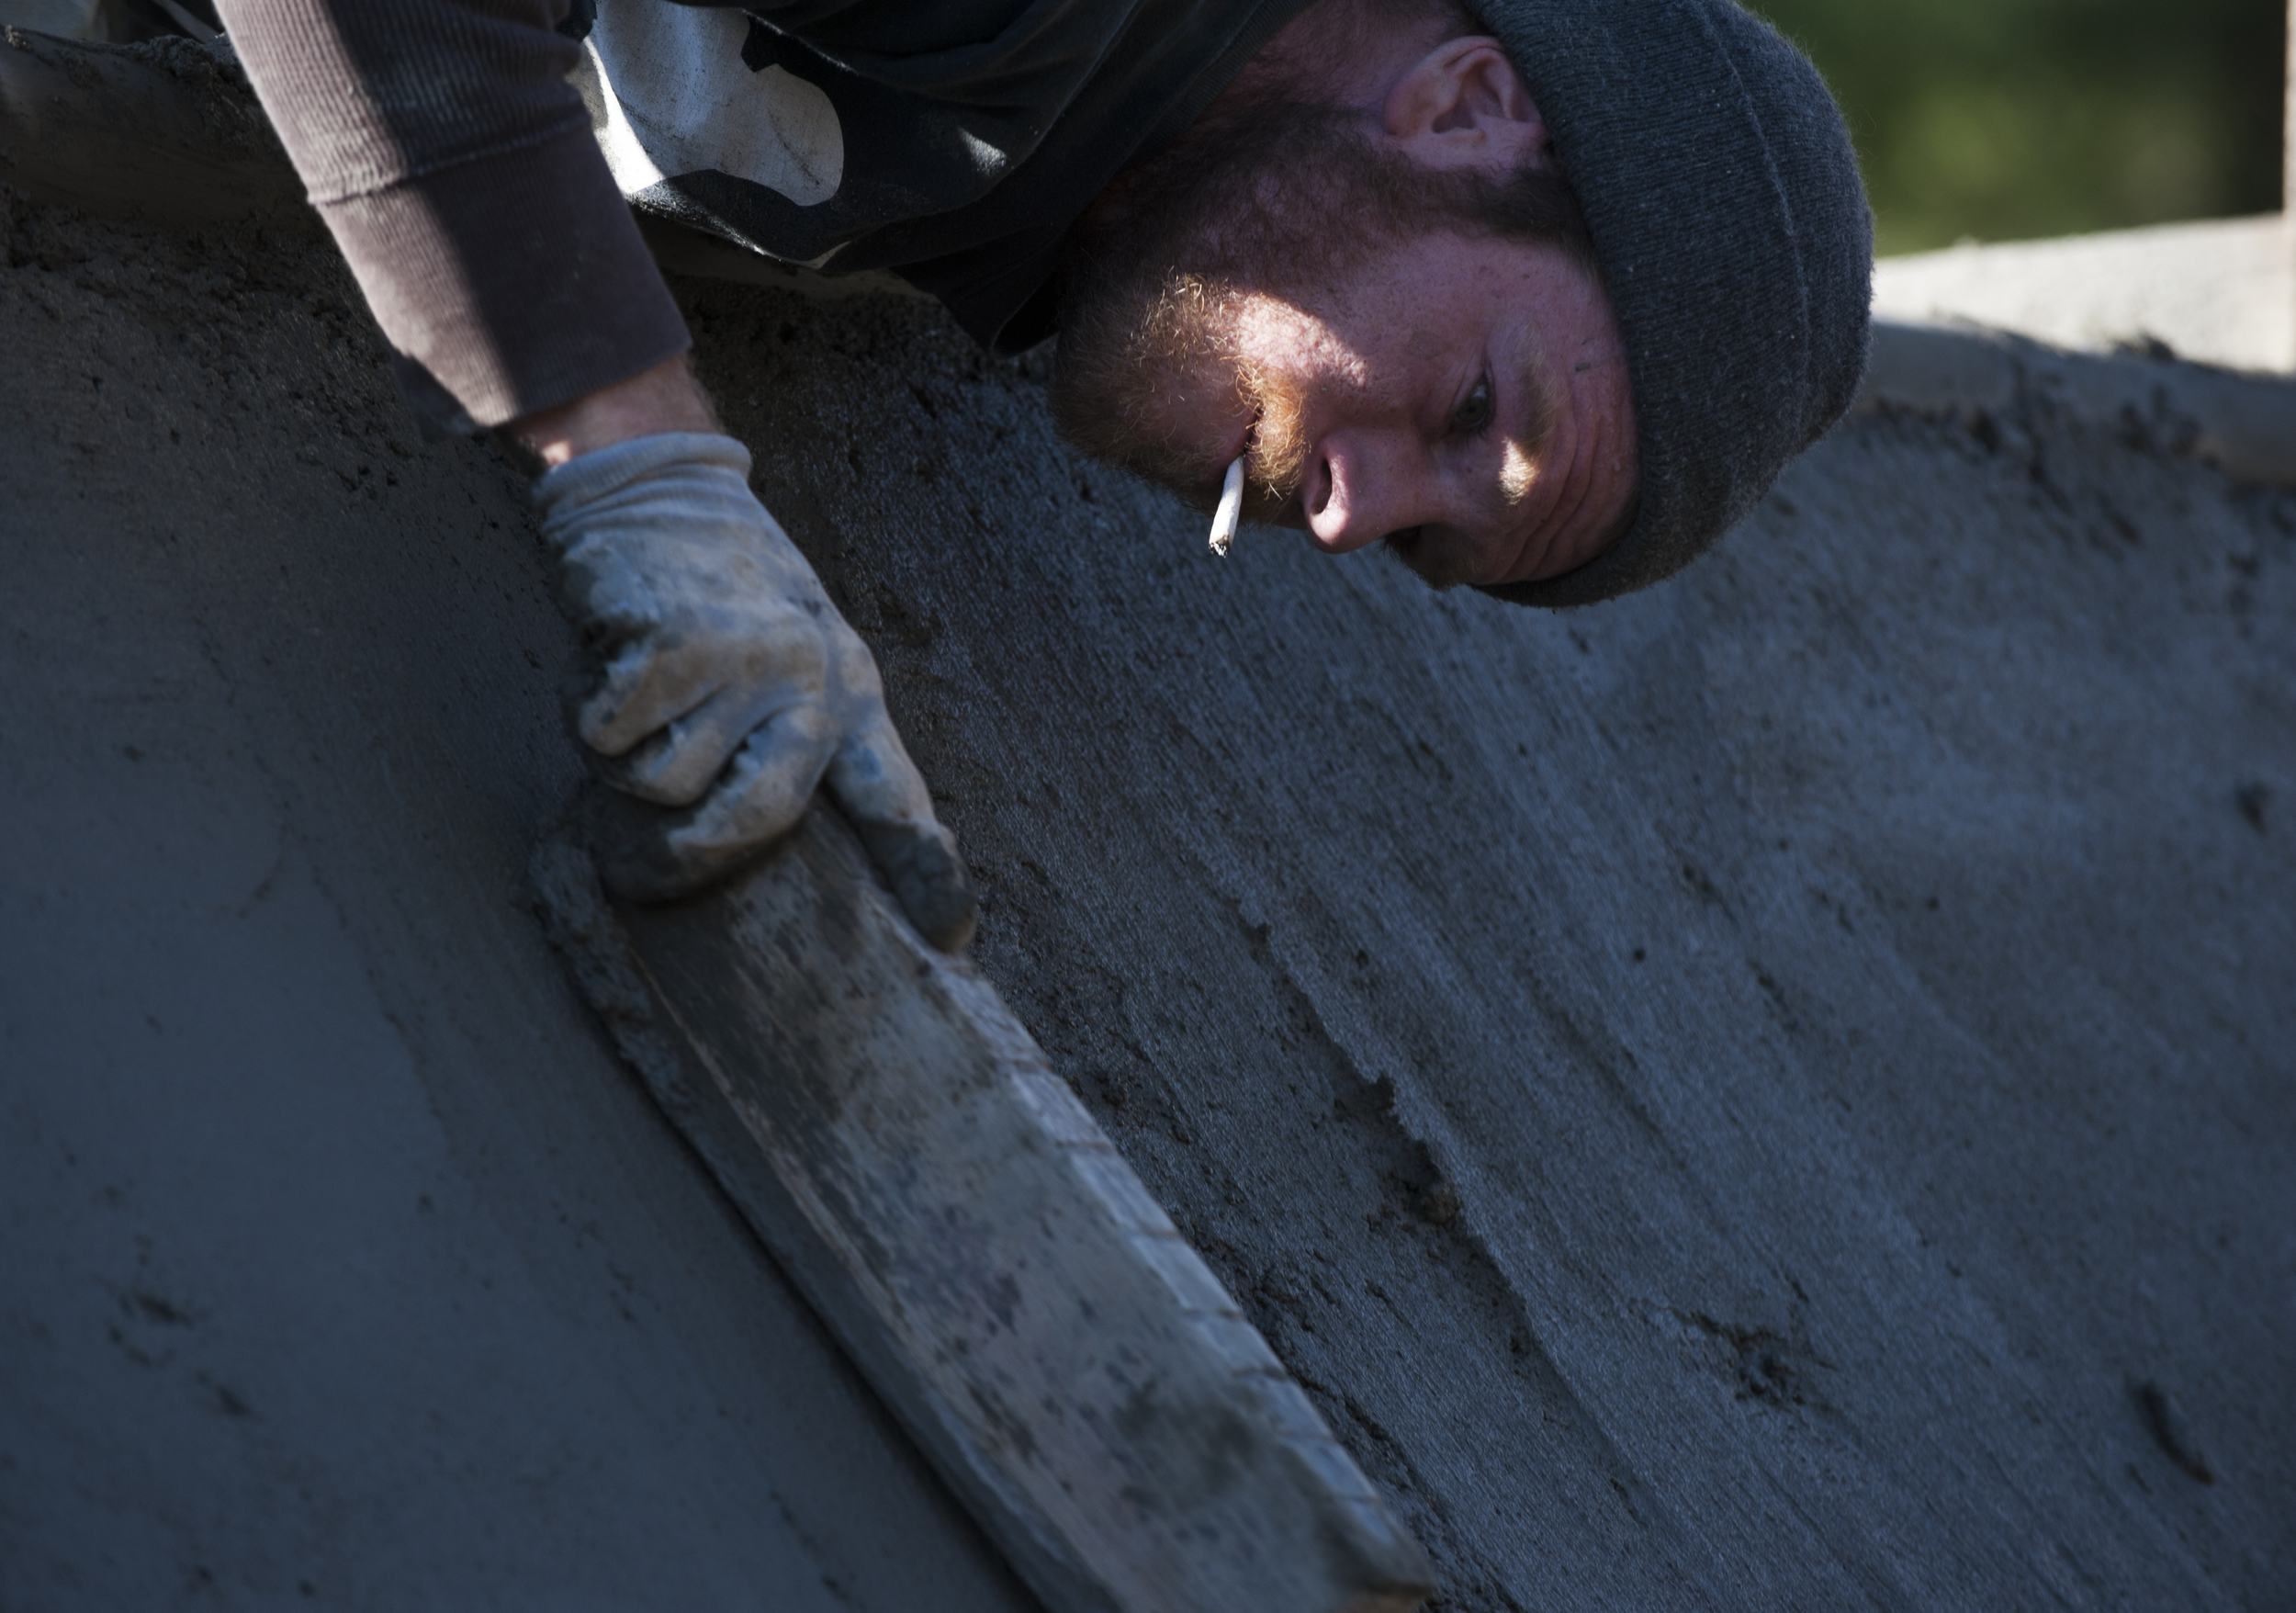 Zack Powell smooths out the concrete on one of the quarter pipes. Powell, a skateboarder, knows what to look for when finishing the concrete.